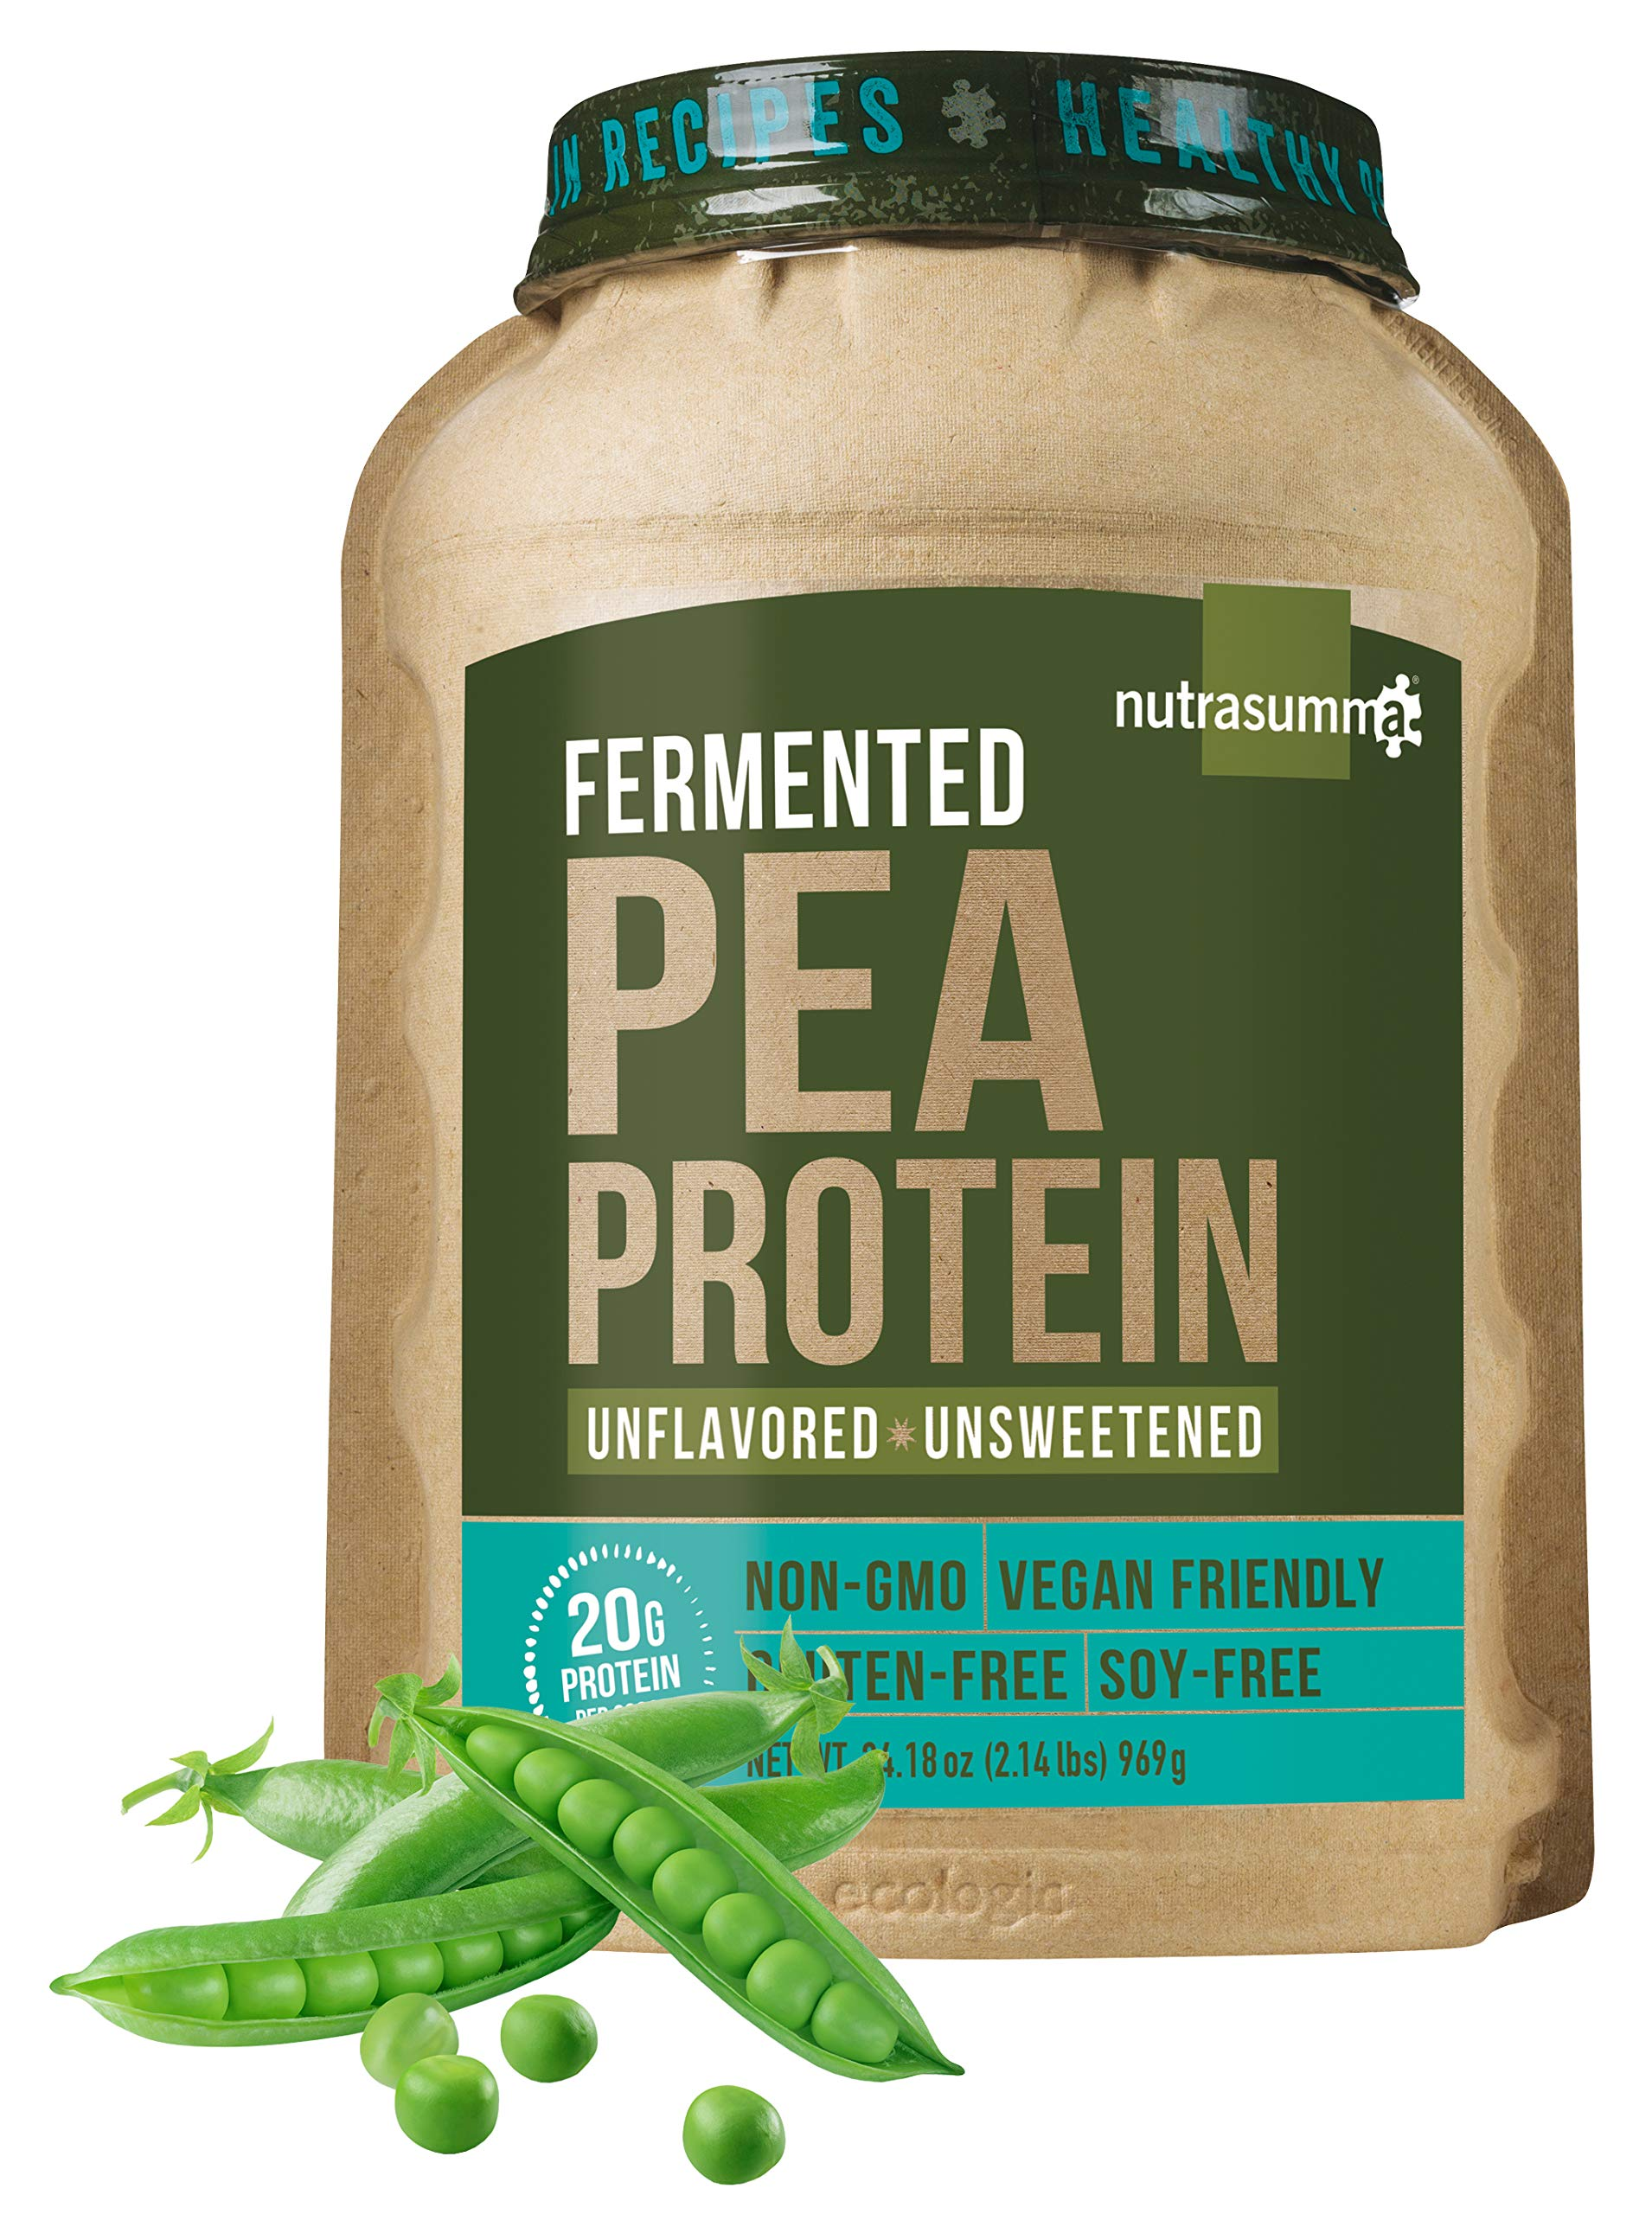 Nutrasumma 2LB 100% Plant Based Fermented Pea Protein Powder, Non-GMO, Gluten & Soy Free, No Artificial Flavors and Colors, Unflavored and Unsweetened by Nutrasumma